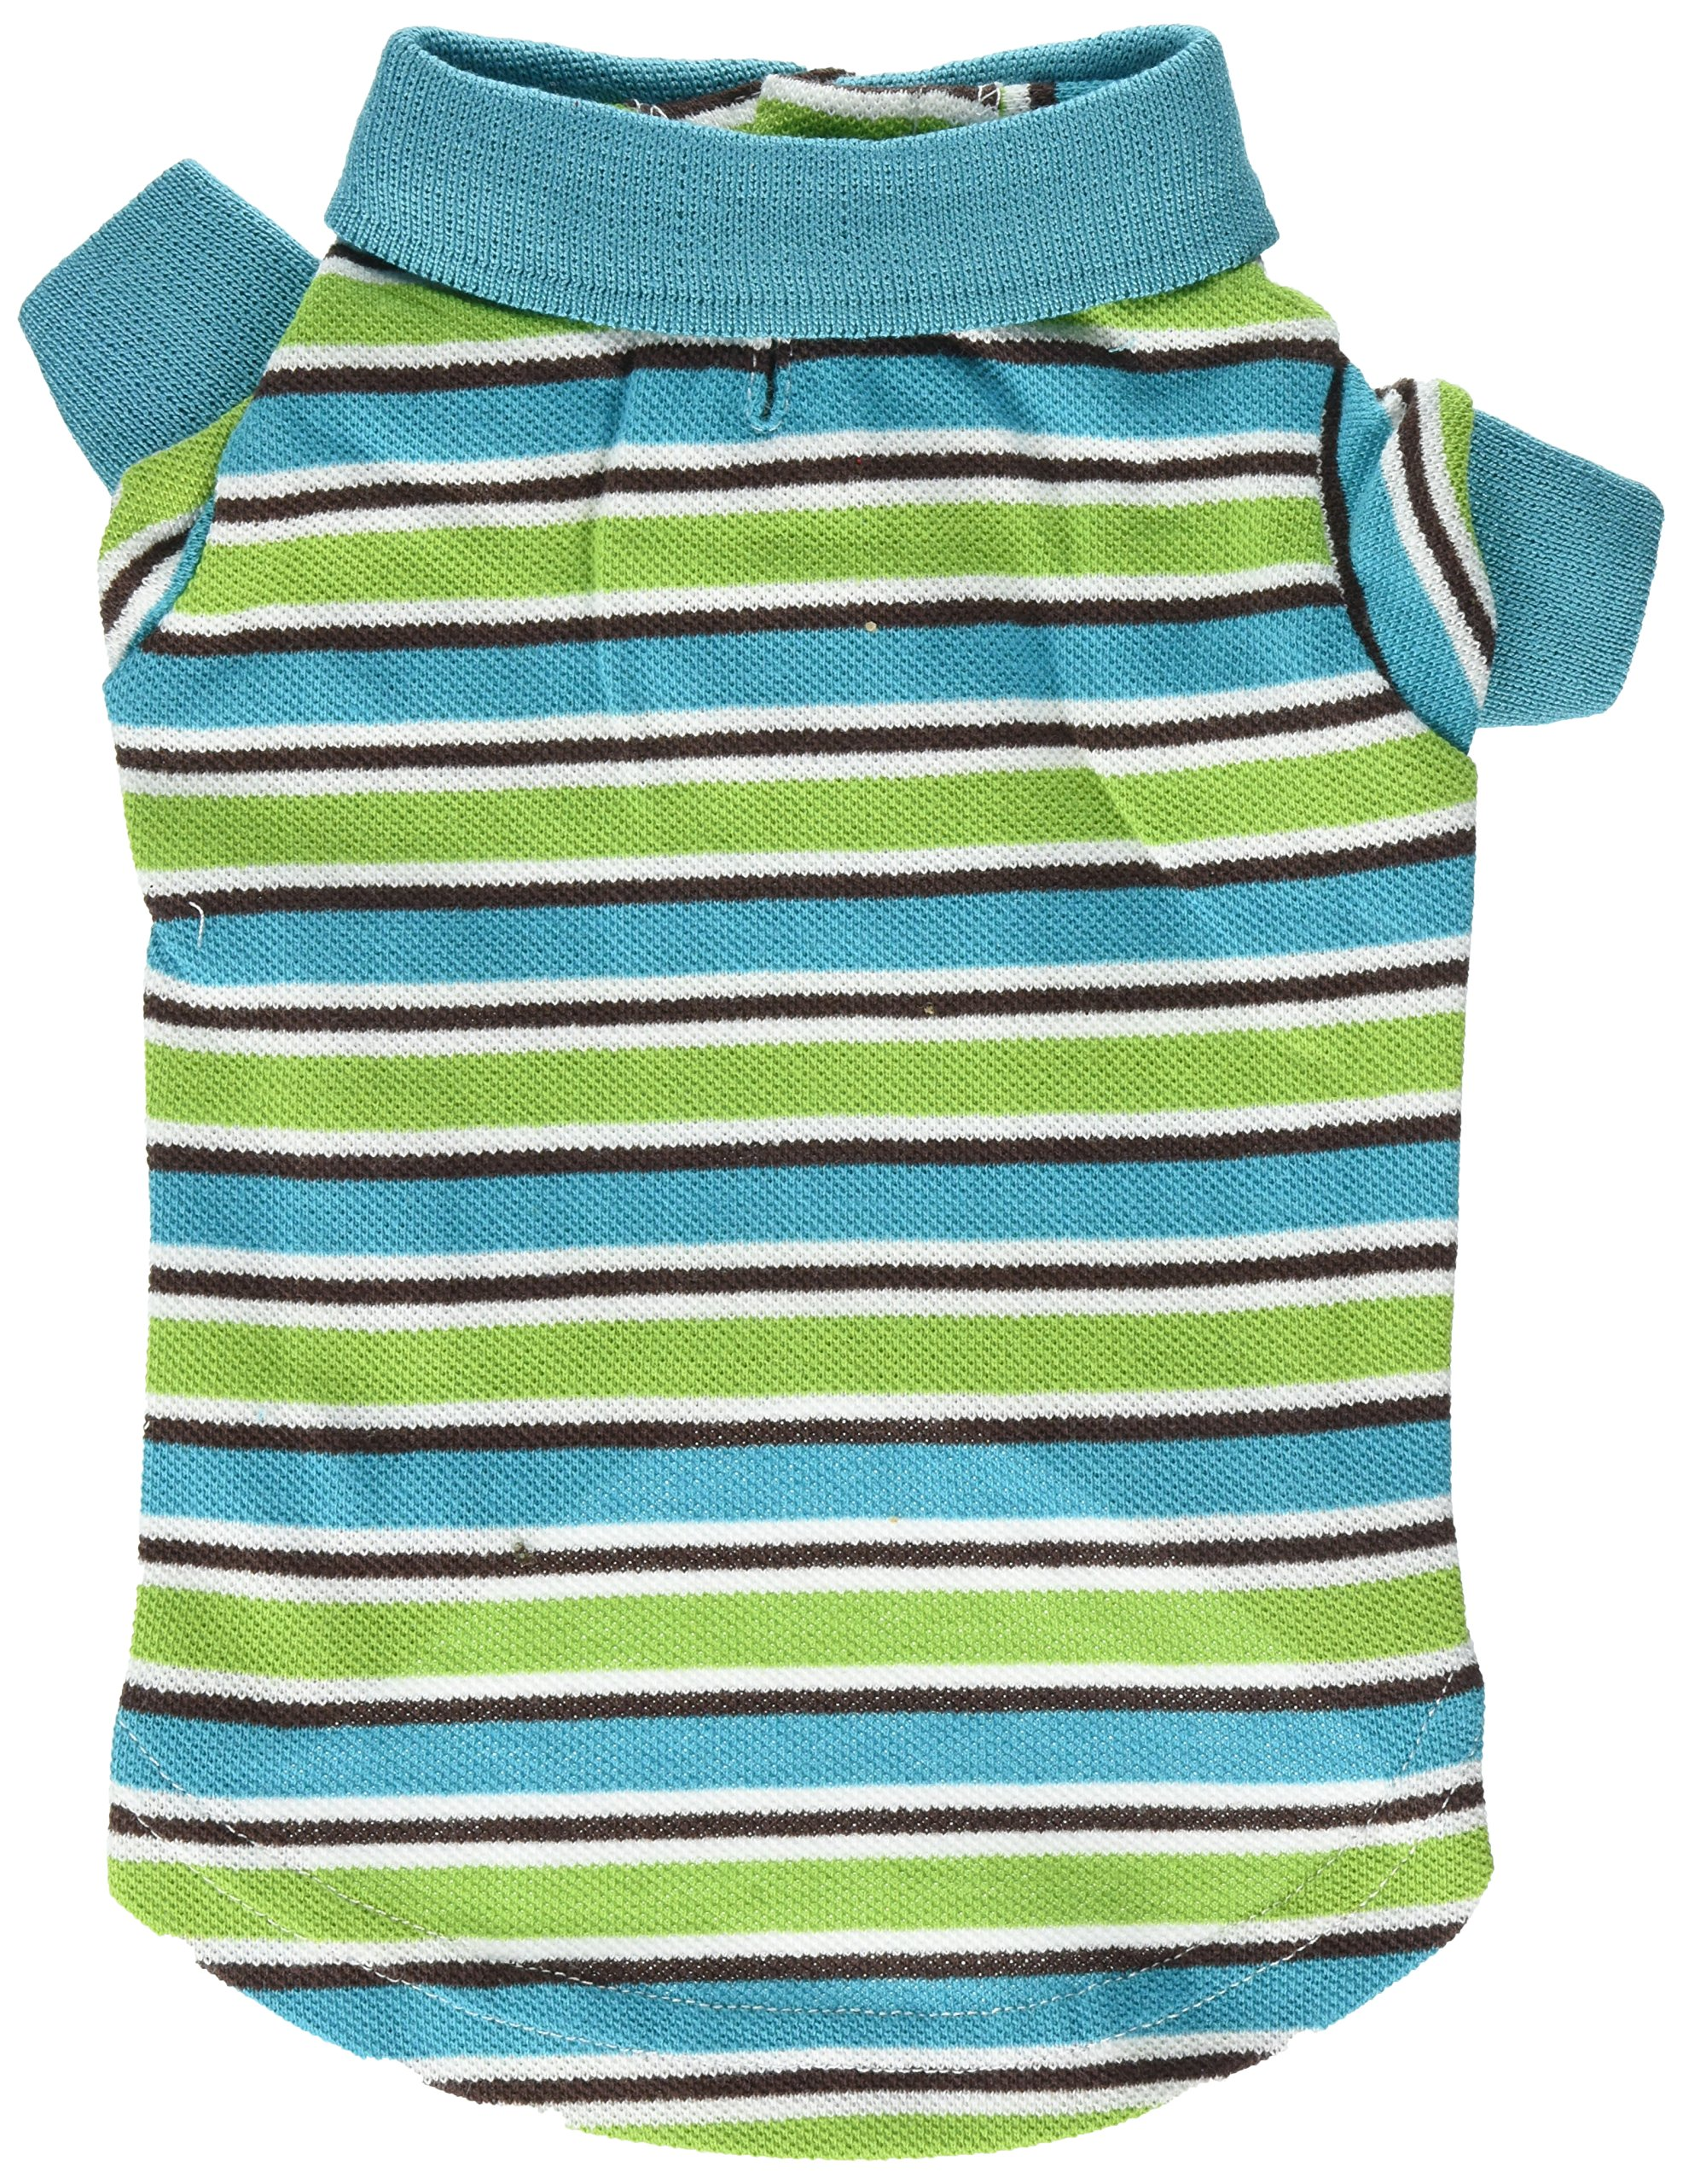 East Side Collection ZM3023 10 16 Brite Striped Polo Top for Dogs, X-Small, Bluebird by East Side Collection (Image #2)